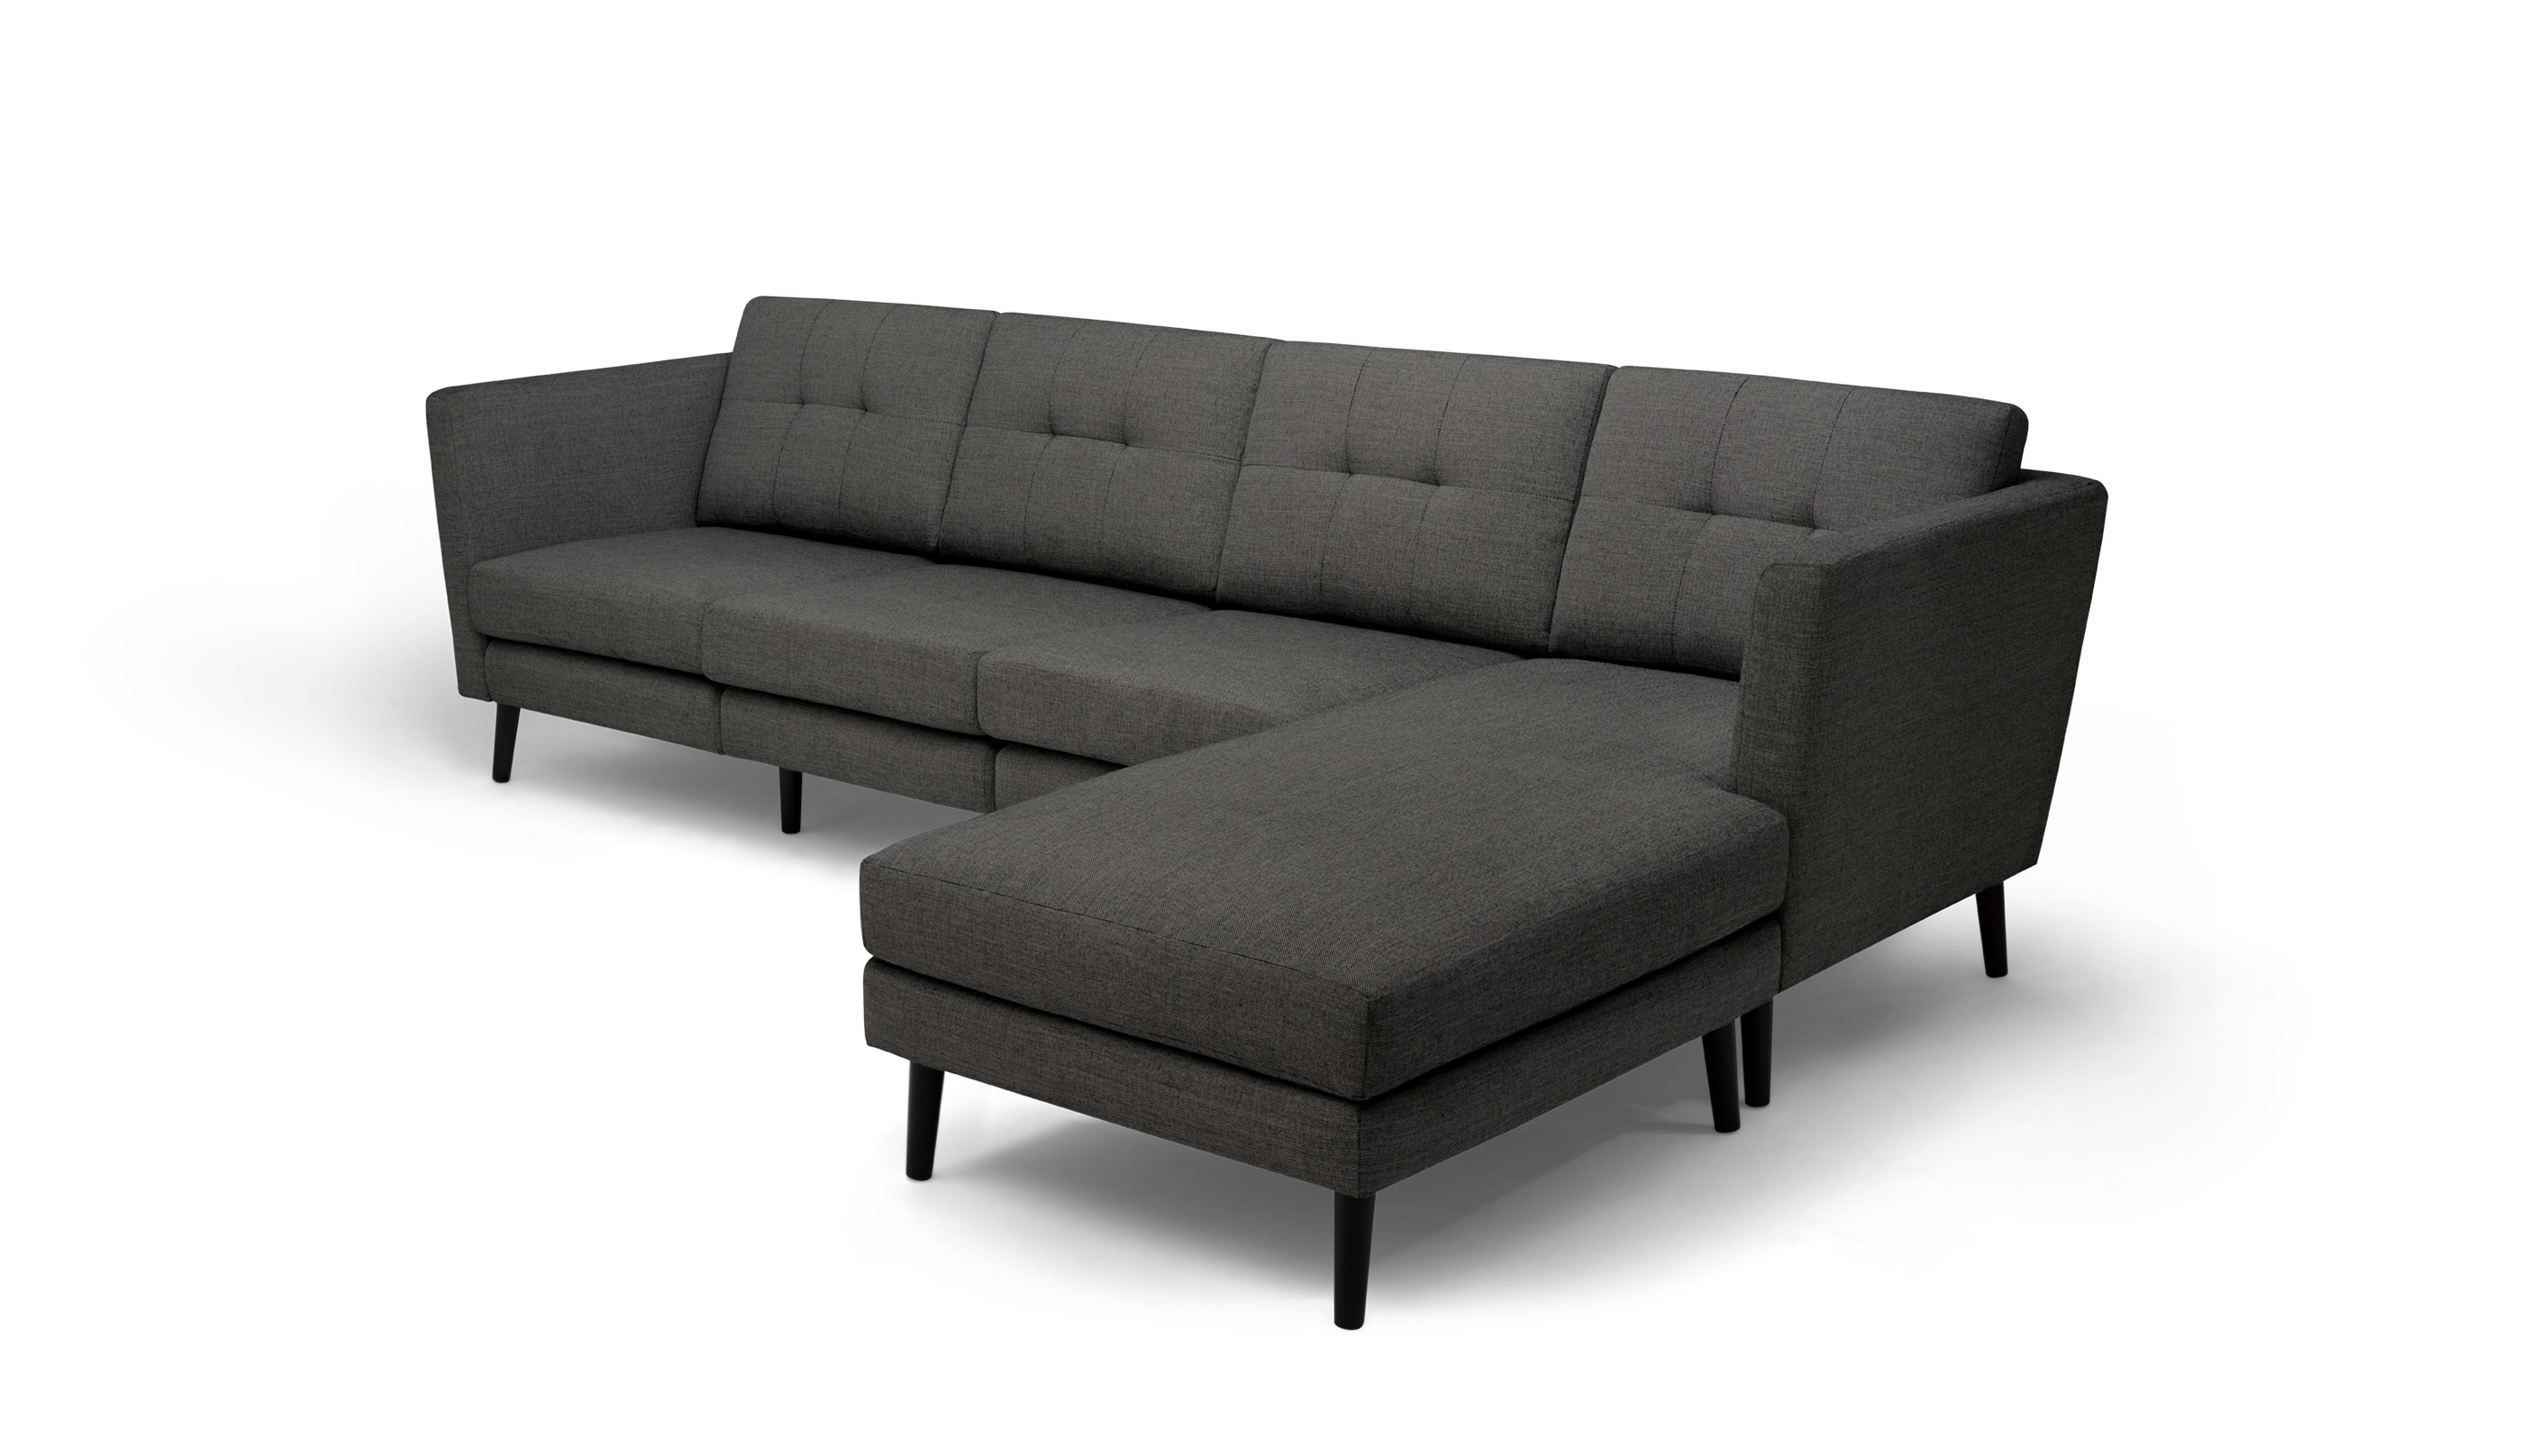 Been Able To Do That With Our Sofa The Addition Of Chaise And Ottoman We Are Bringing Even More Comfort Convenience Customers